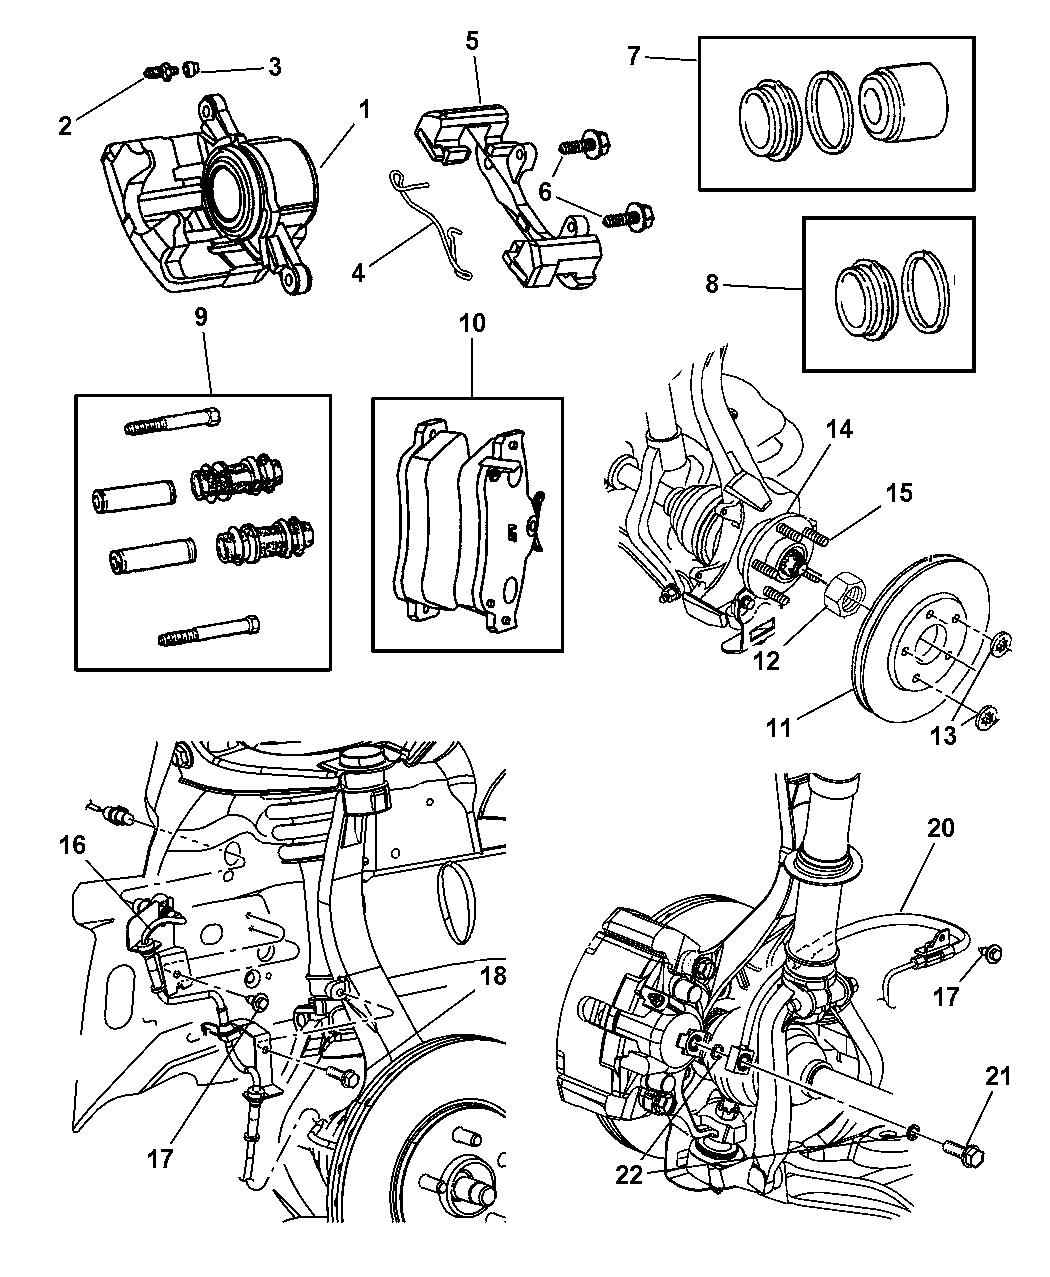 Chrysler 300 Replacement Parts Motor Repalcement Parts And Diagram